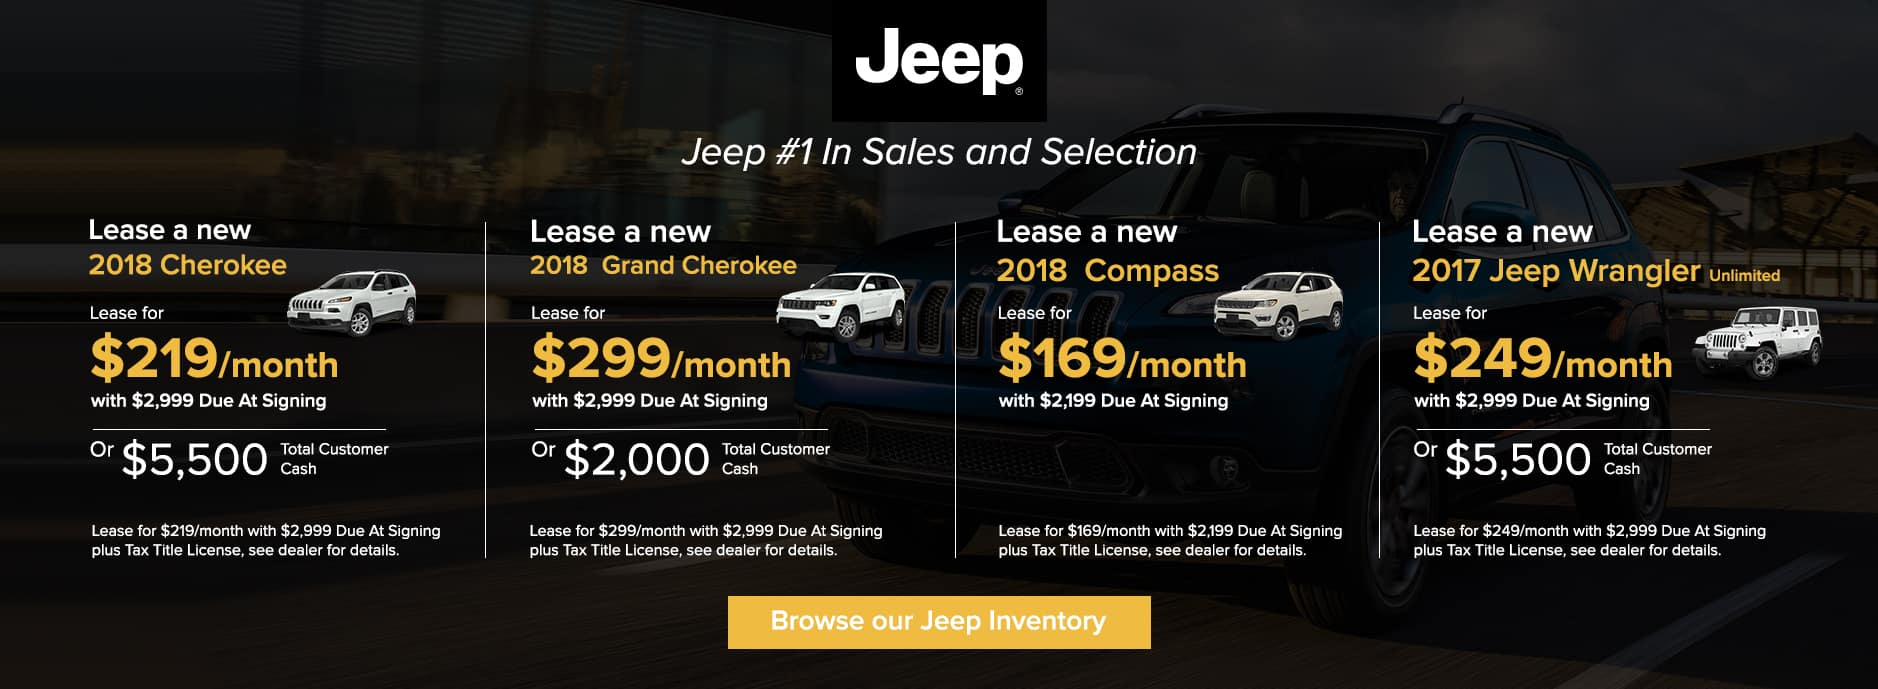 Jeep November Offers Zeigler CDJ